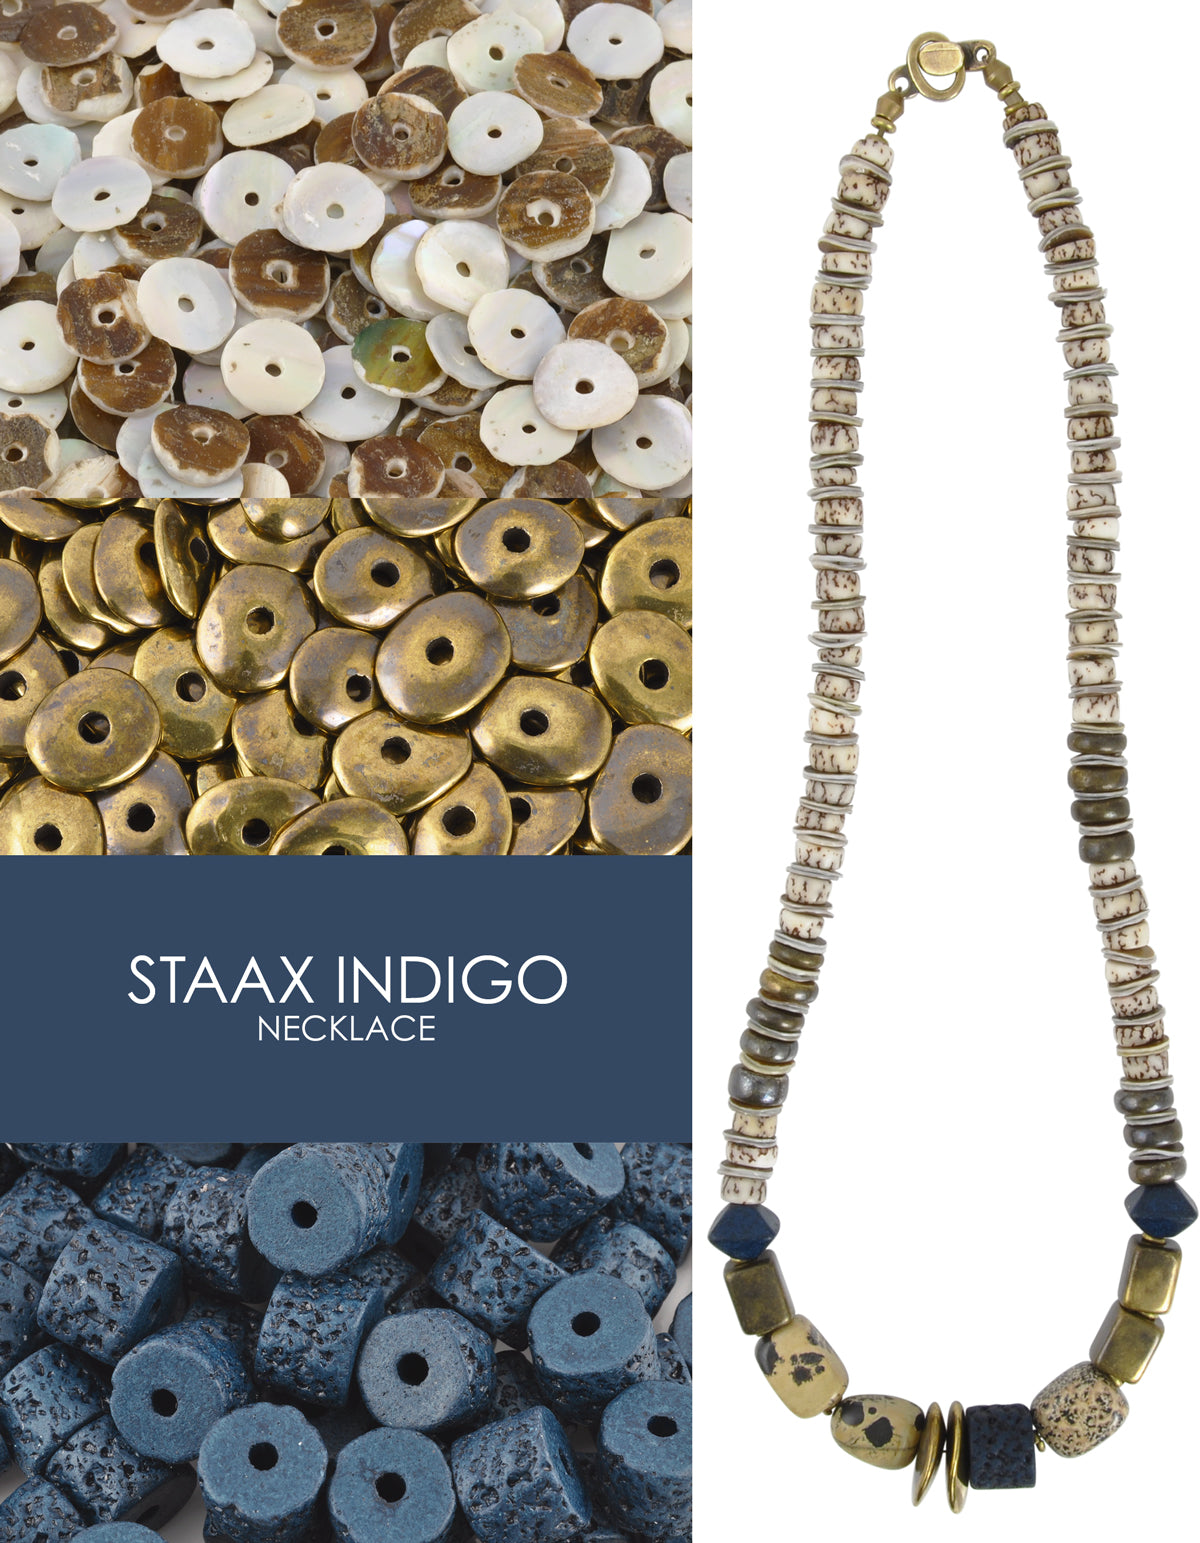 Staax Indigo Necklace Blog Tamara Scott Designs